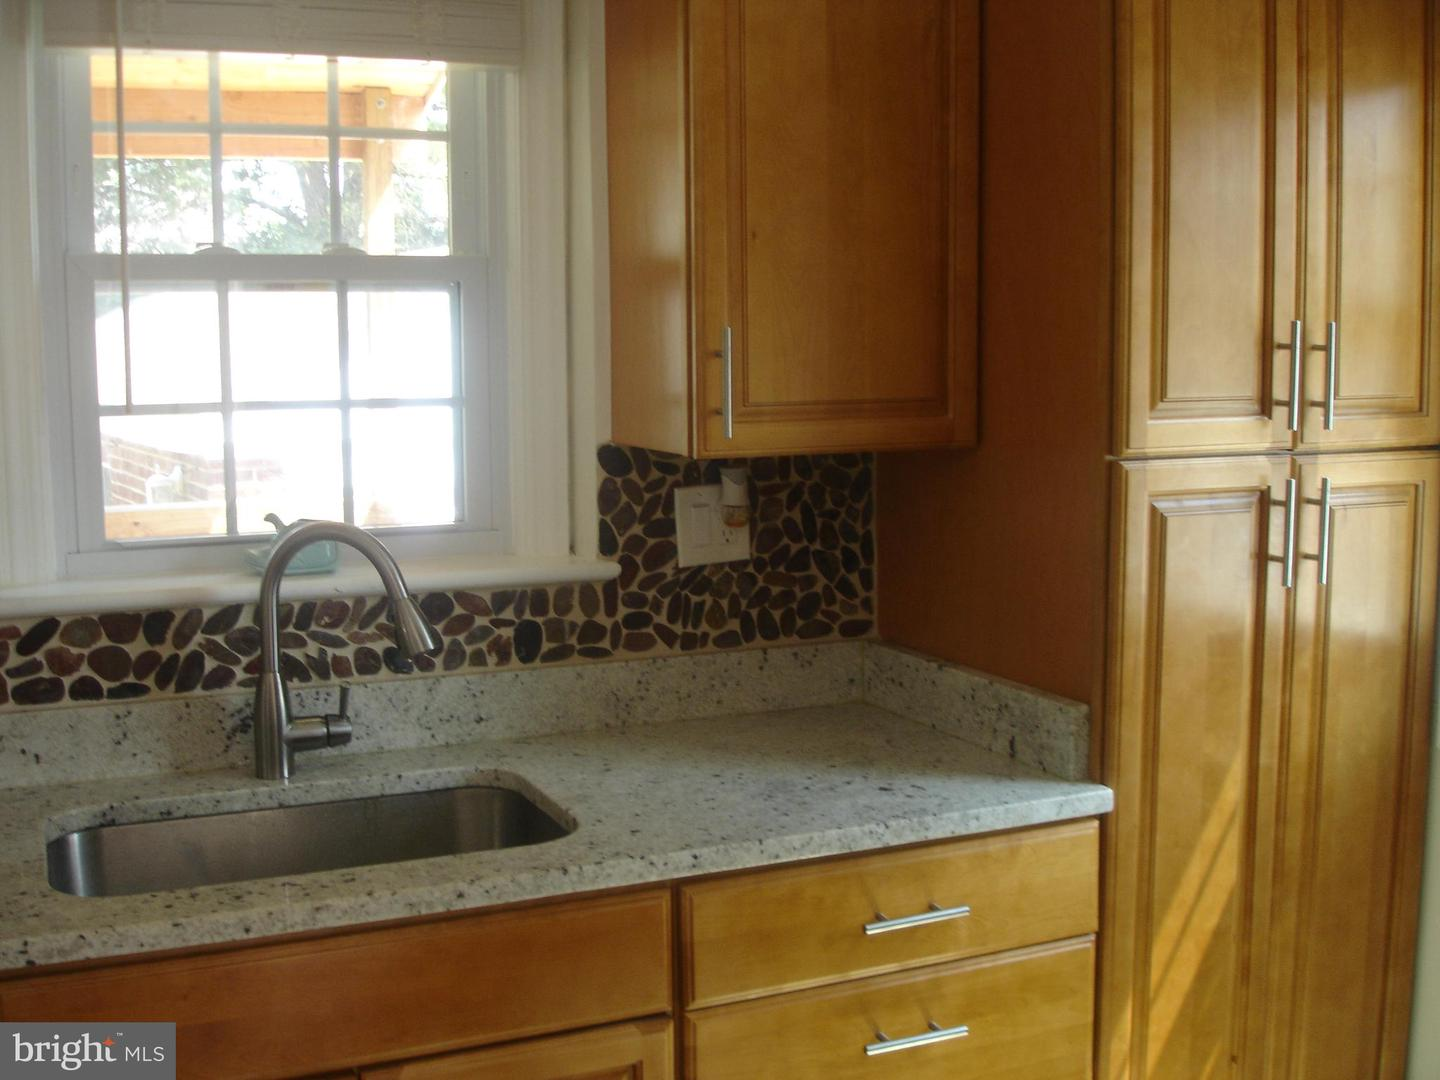 Additional photo for property listing at 2229 Beechwood Rd Hyattsville, Maryland 20783 United States